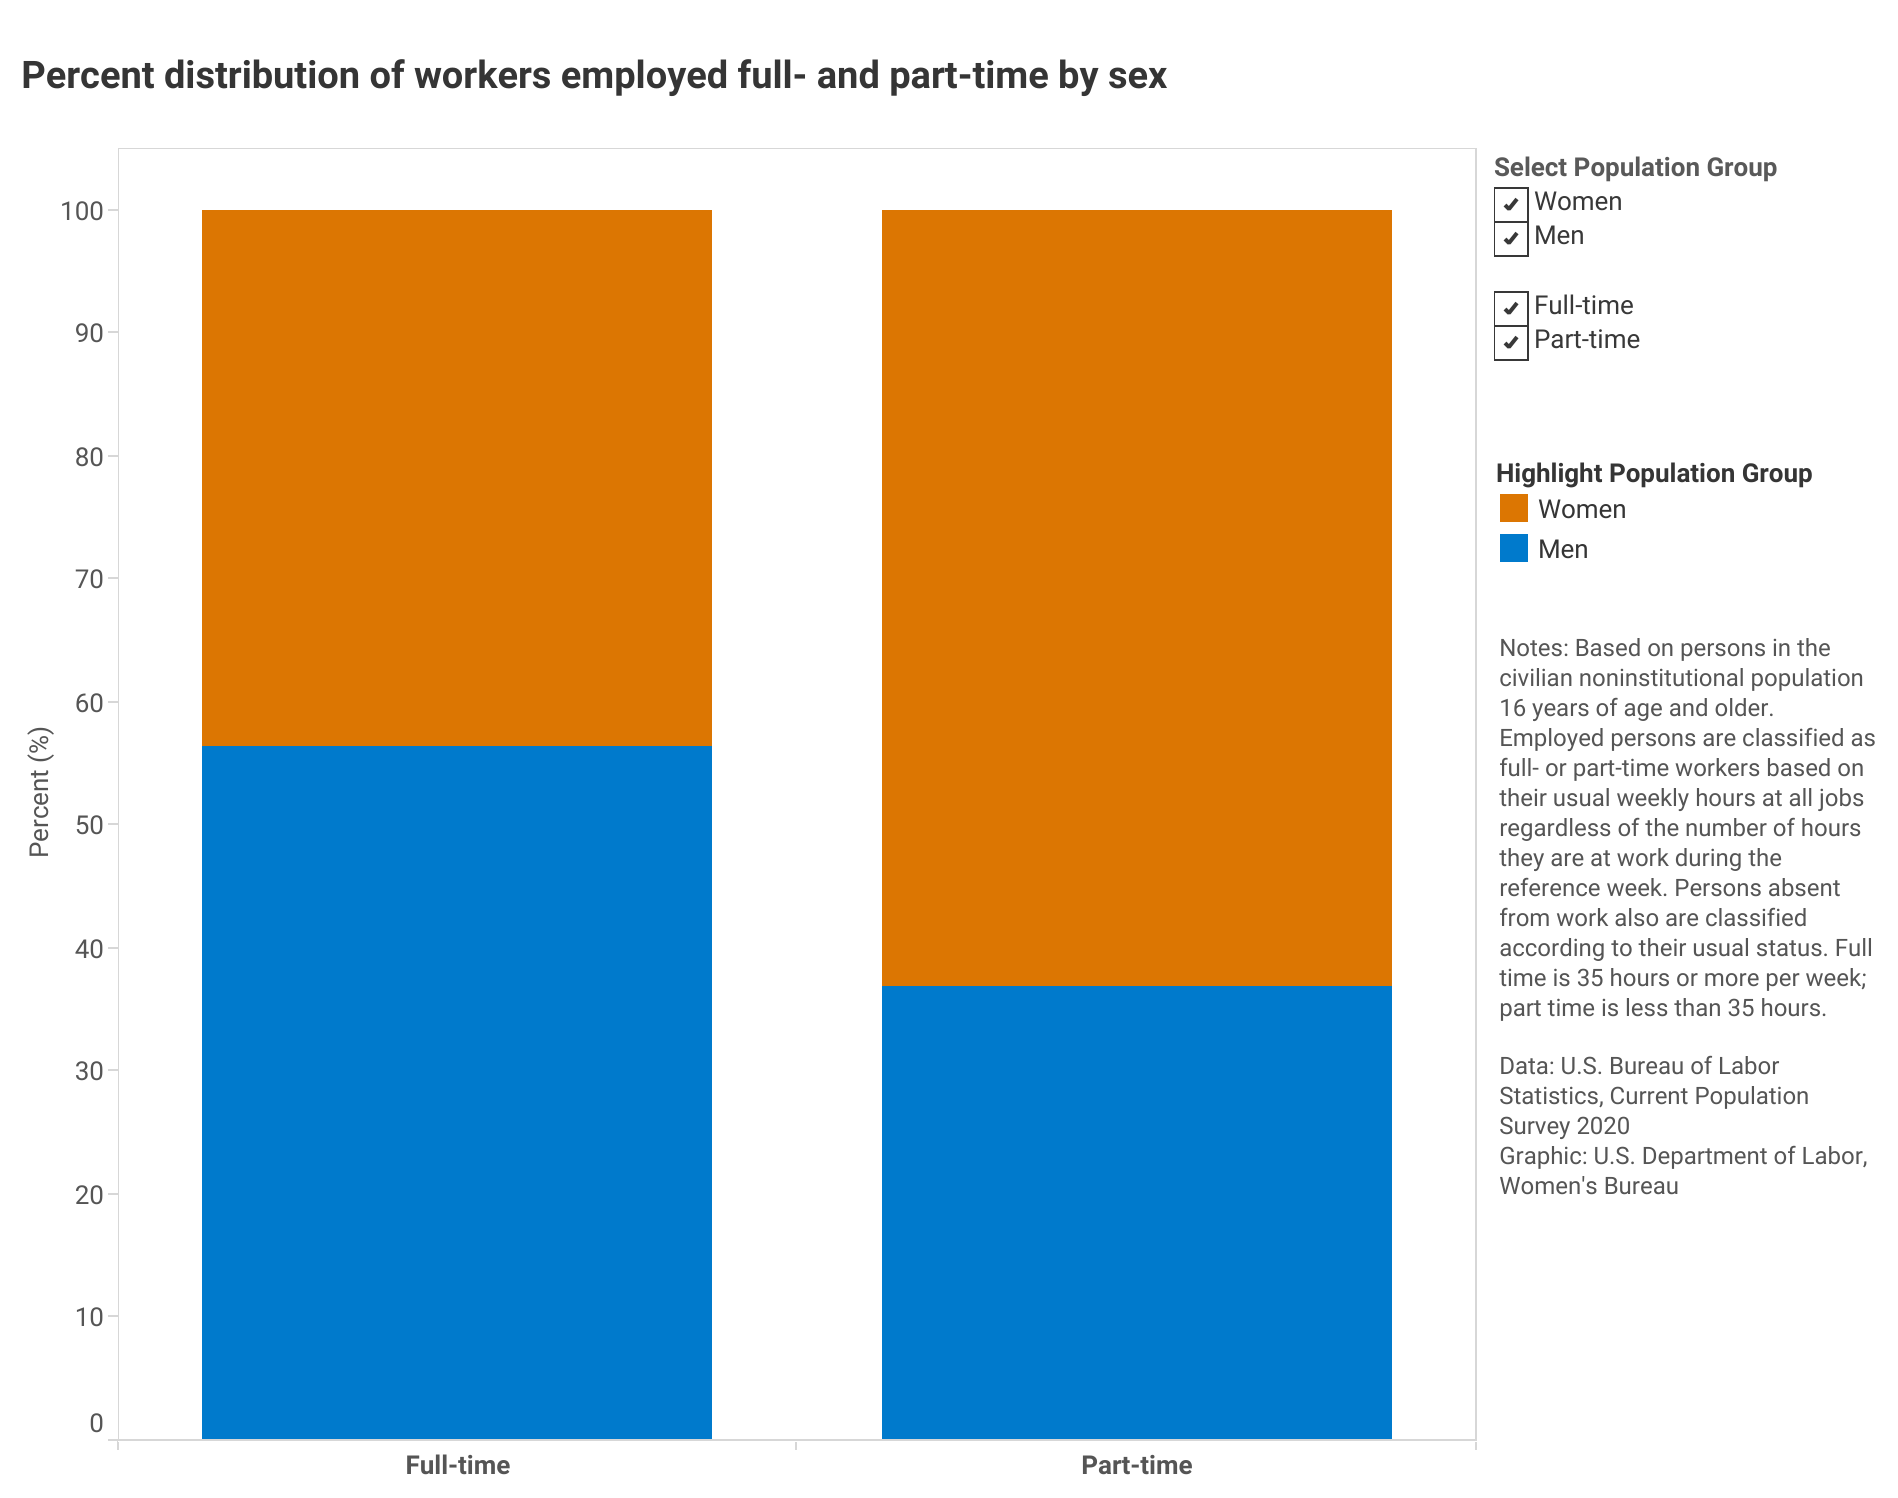 U.S. department of labor statistic on Percent distribution of workers employed full- and part-time by sex